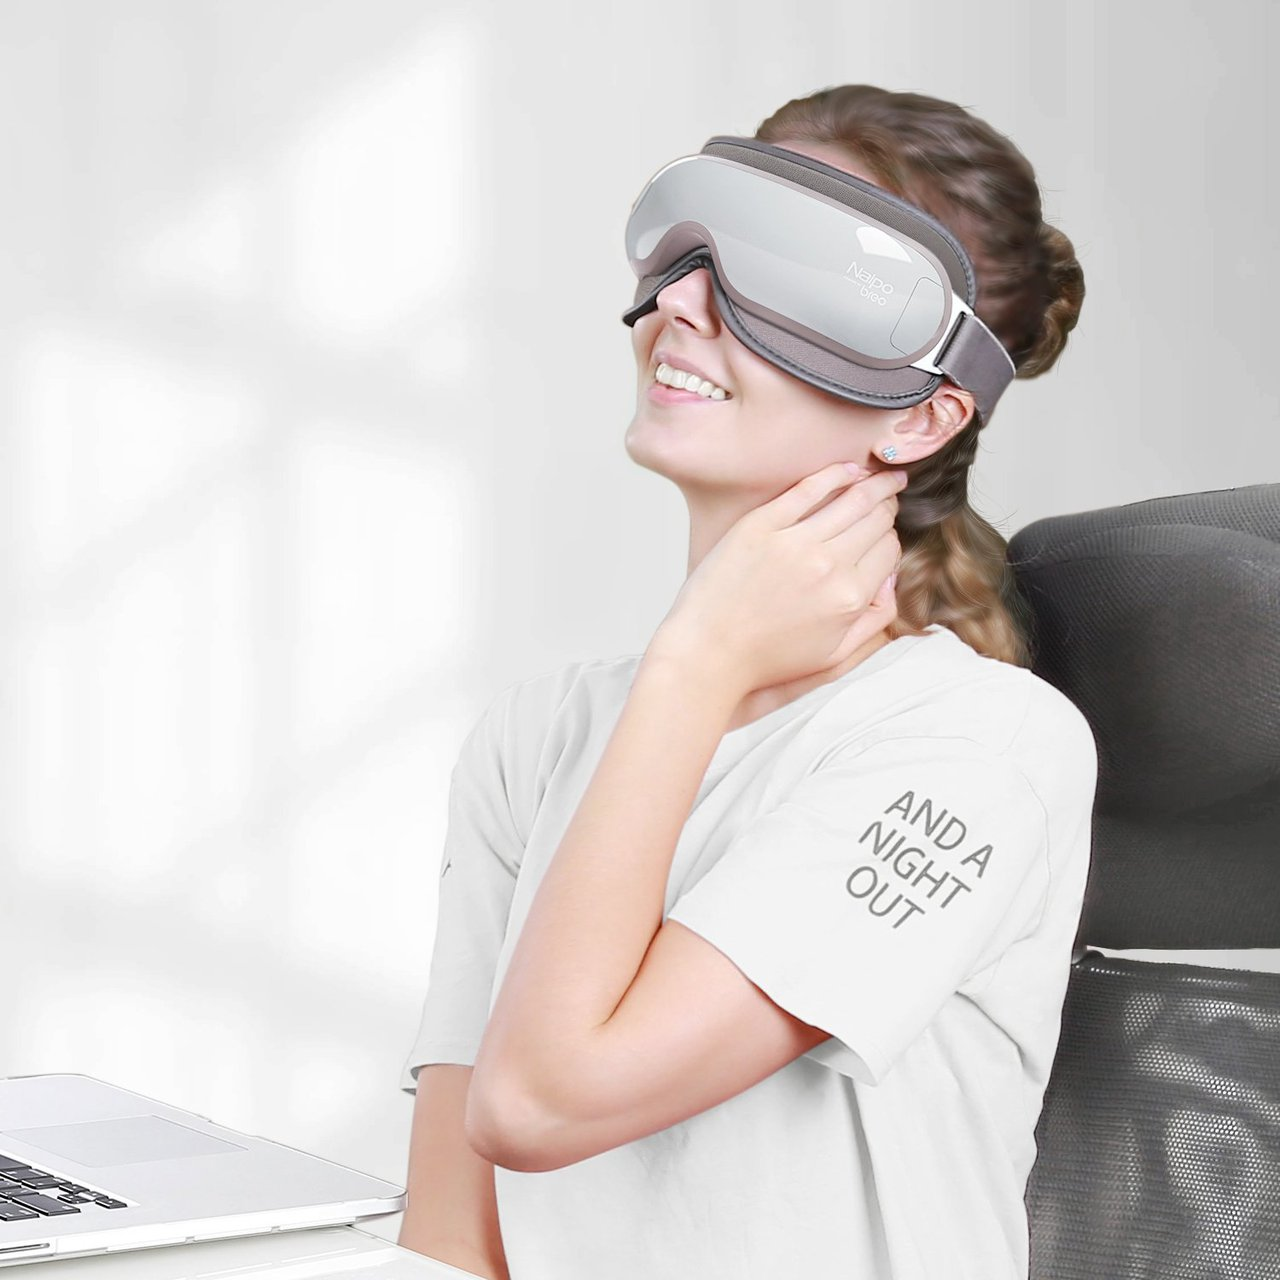 Naipo Breo Eye Massager with Heating and Music, Compression Three Modes, Eye Care Stress Relief